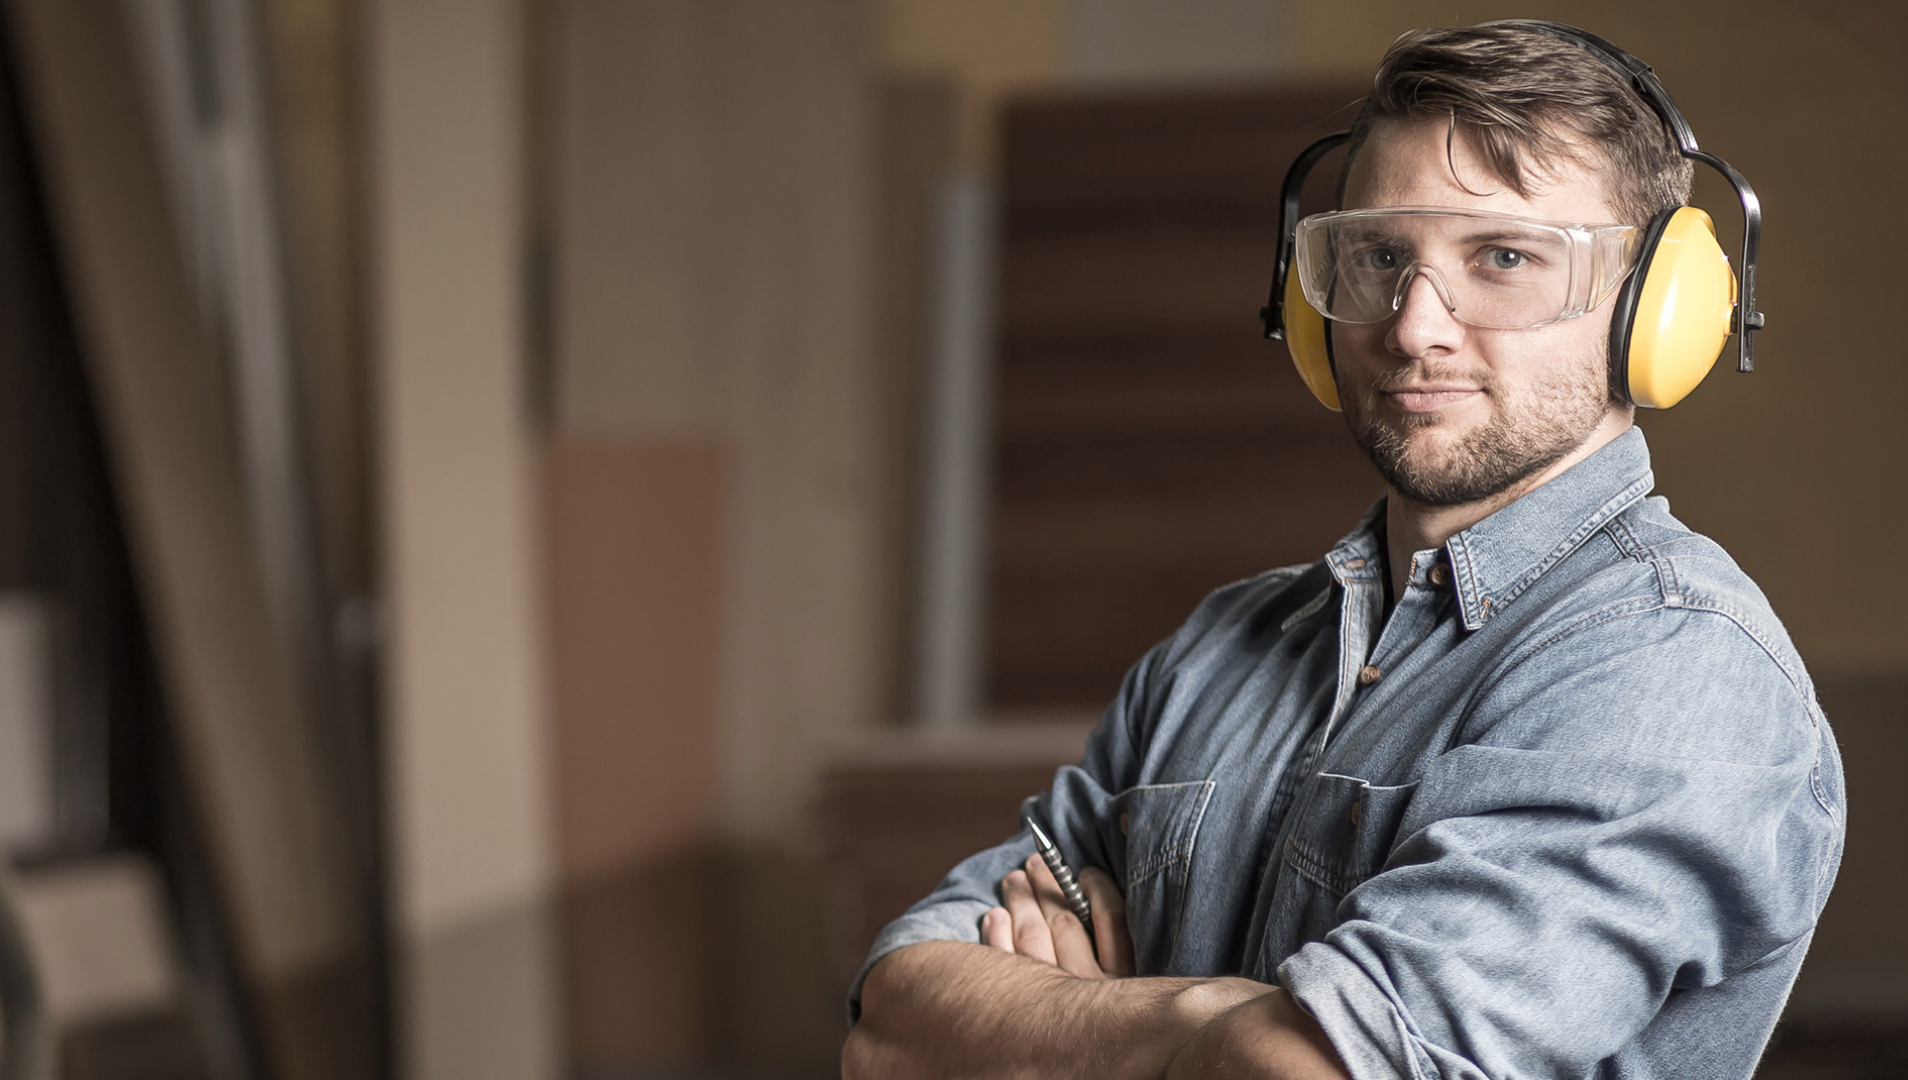 A man with arms crossed while wearing woodworking protective equipment.